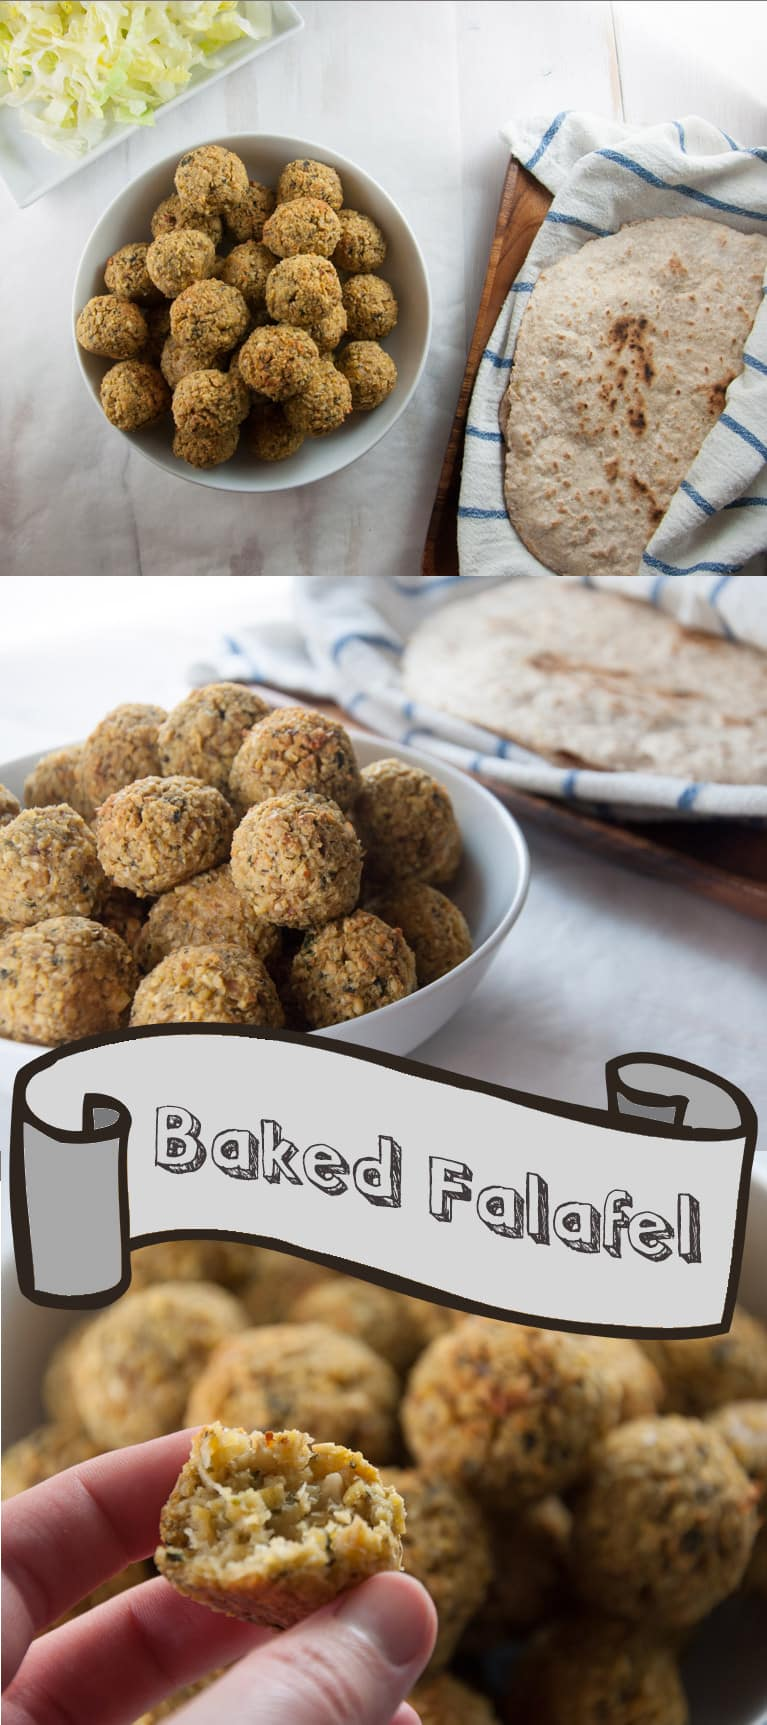 Huge Batch of Baked Falafel - freezer-friendly! | ElephantasticVegan.com #vegan #glutenfree #chickpea #freezerfriendly #falafel